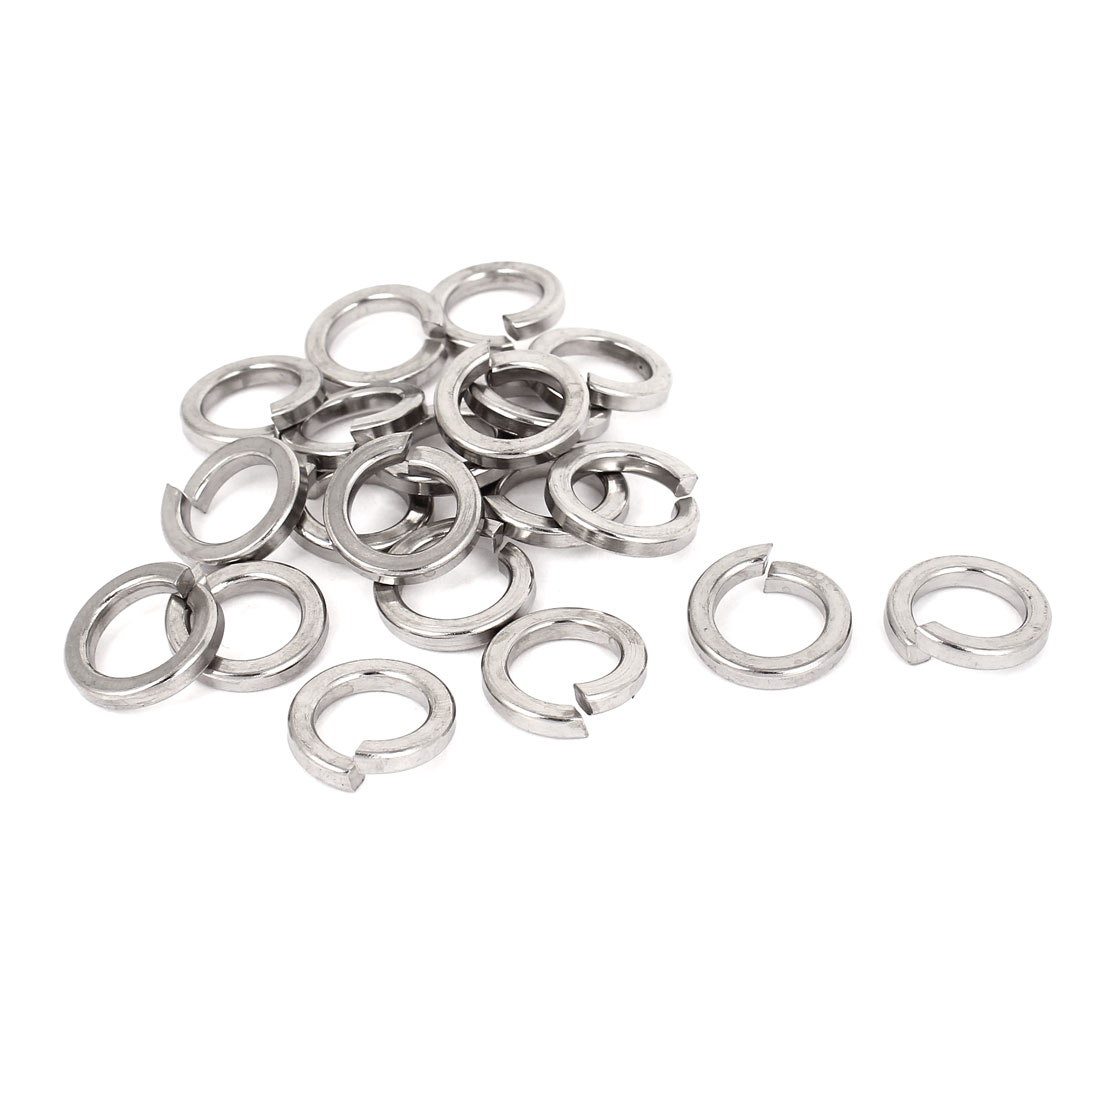 "20pcs 316 Stainless Steel Split Lock Spring Washers 1/2"" Screw Spacer Pad"